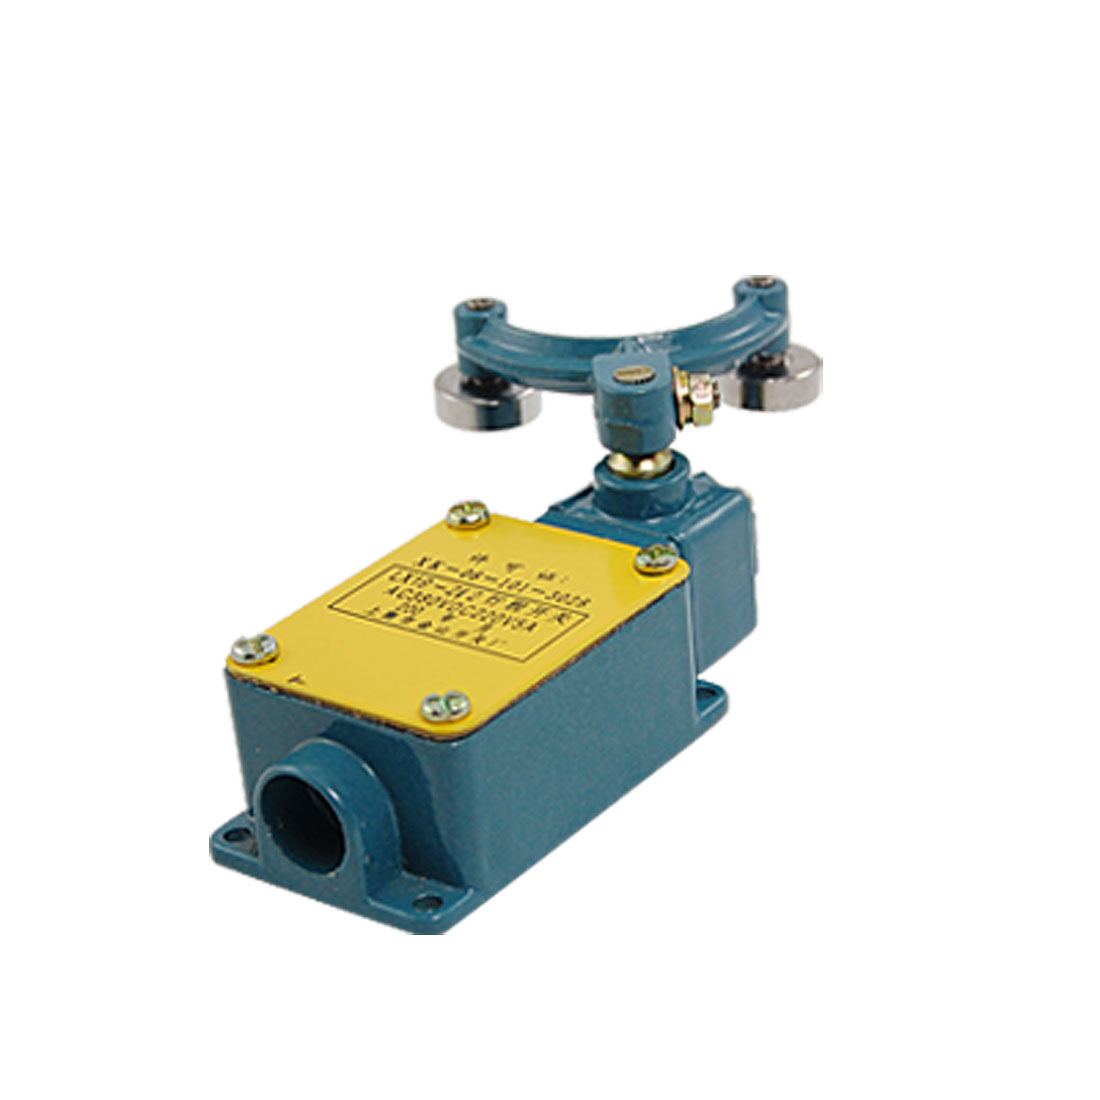 LX19-212 Momentary Double Rotary Roller Lever Arm Enclosed Limit Switch